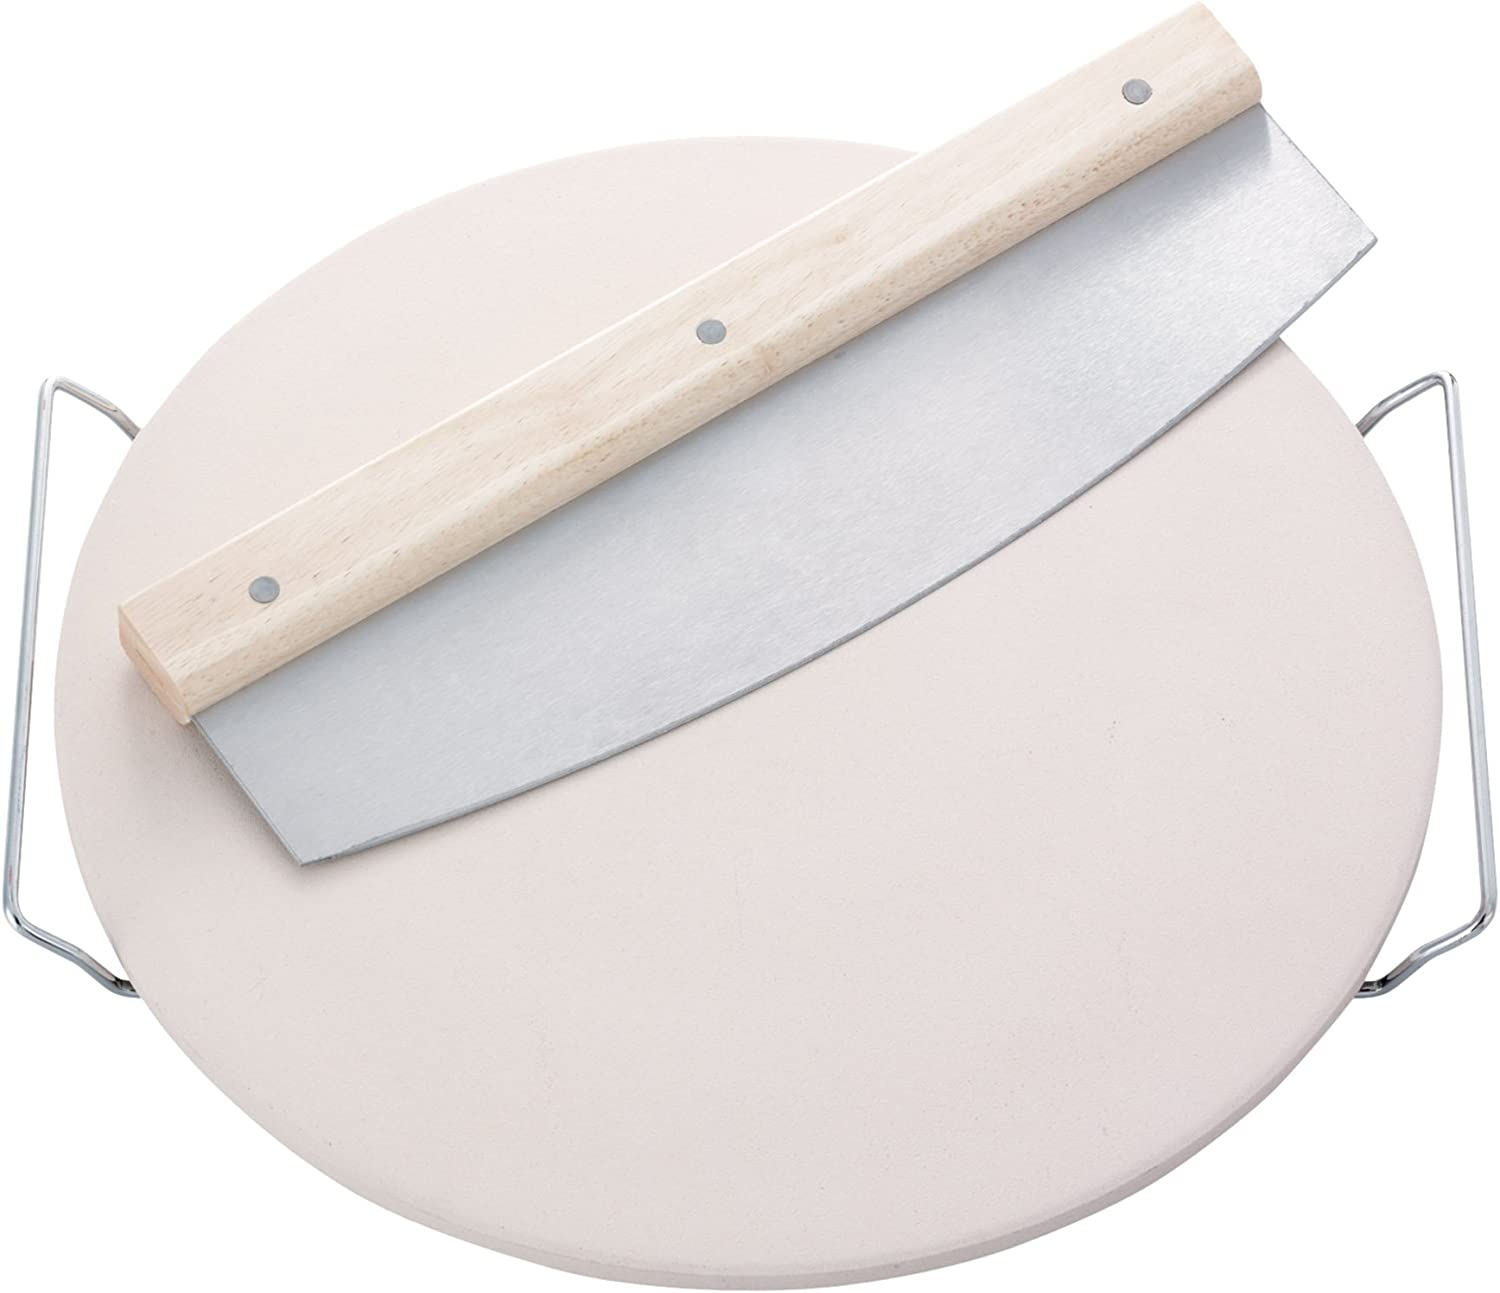 Leifheit Max 65% OFF Round Ceramic Pizza Stone Over item handling and Large Carrying Tray with